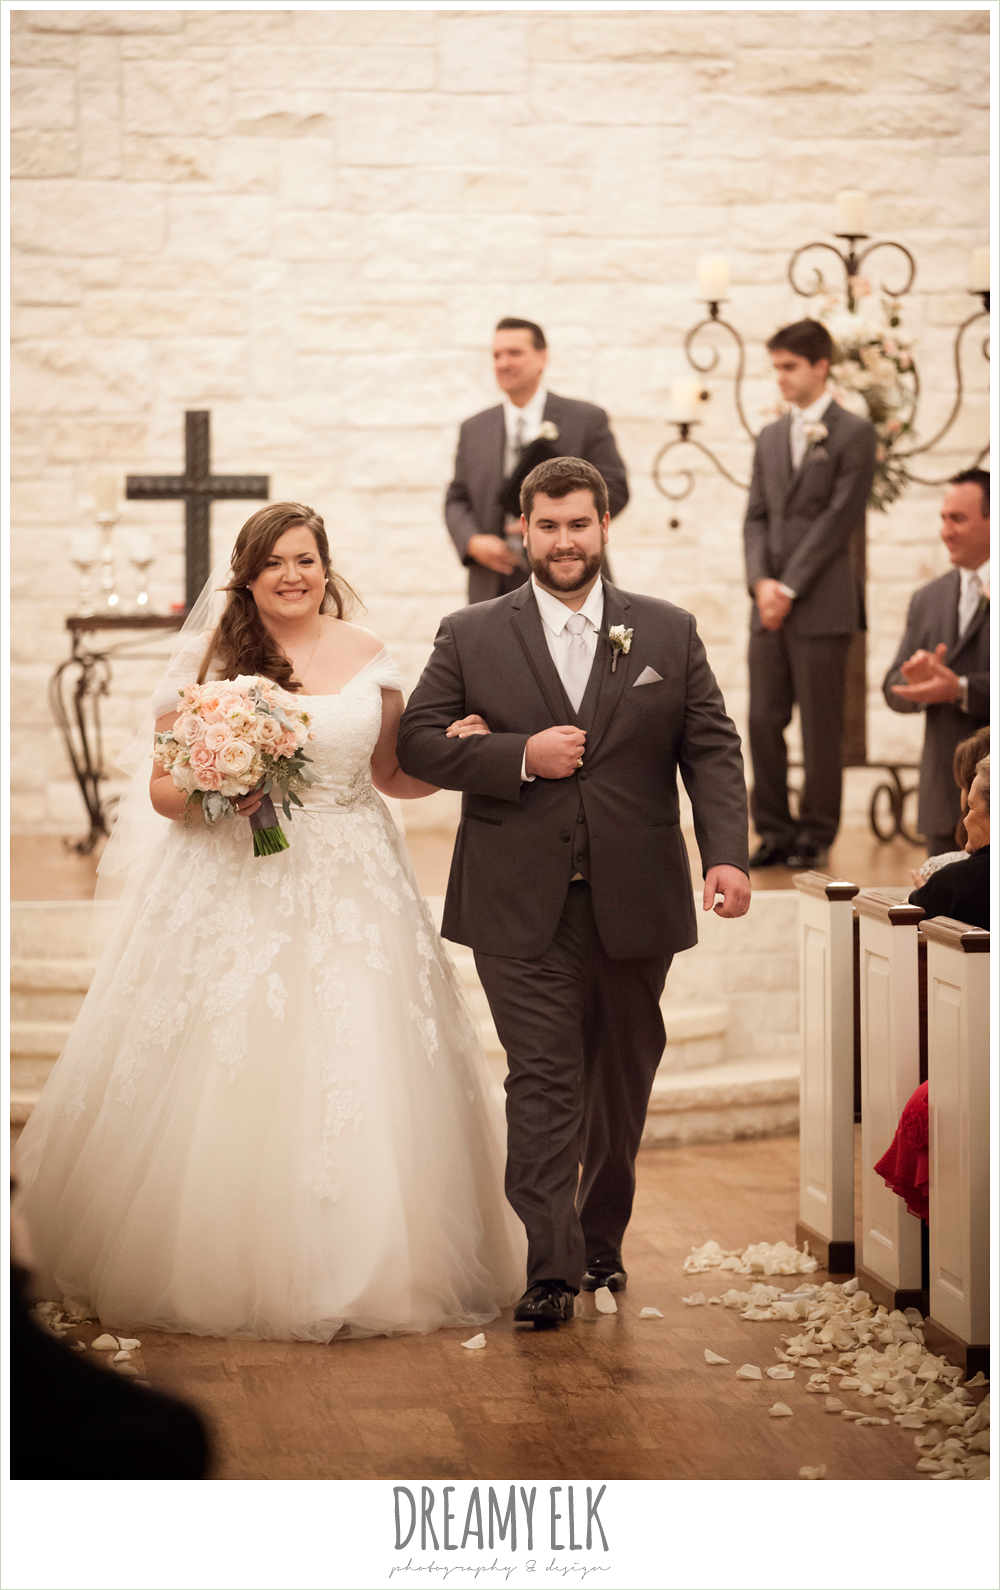 bride and groom walking down the aisle, briscoe manor, houston winter wedding {dreamy elk photography and design}